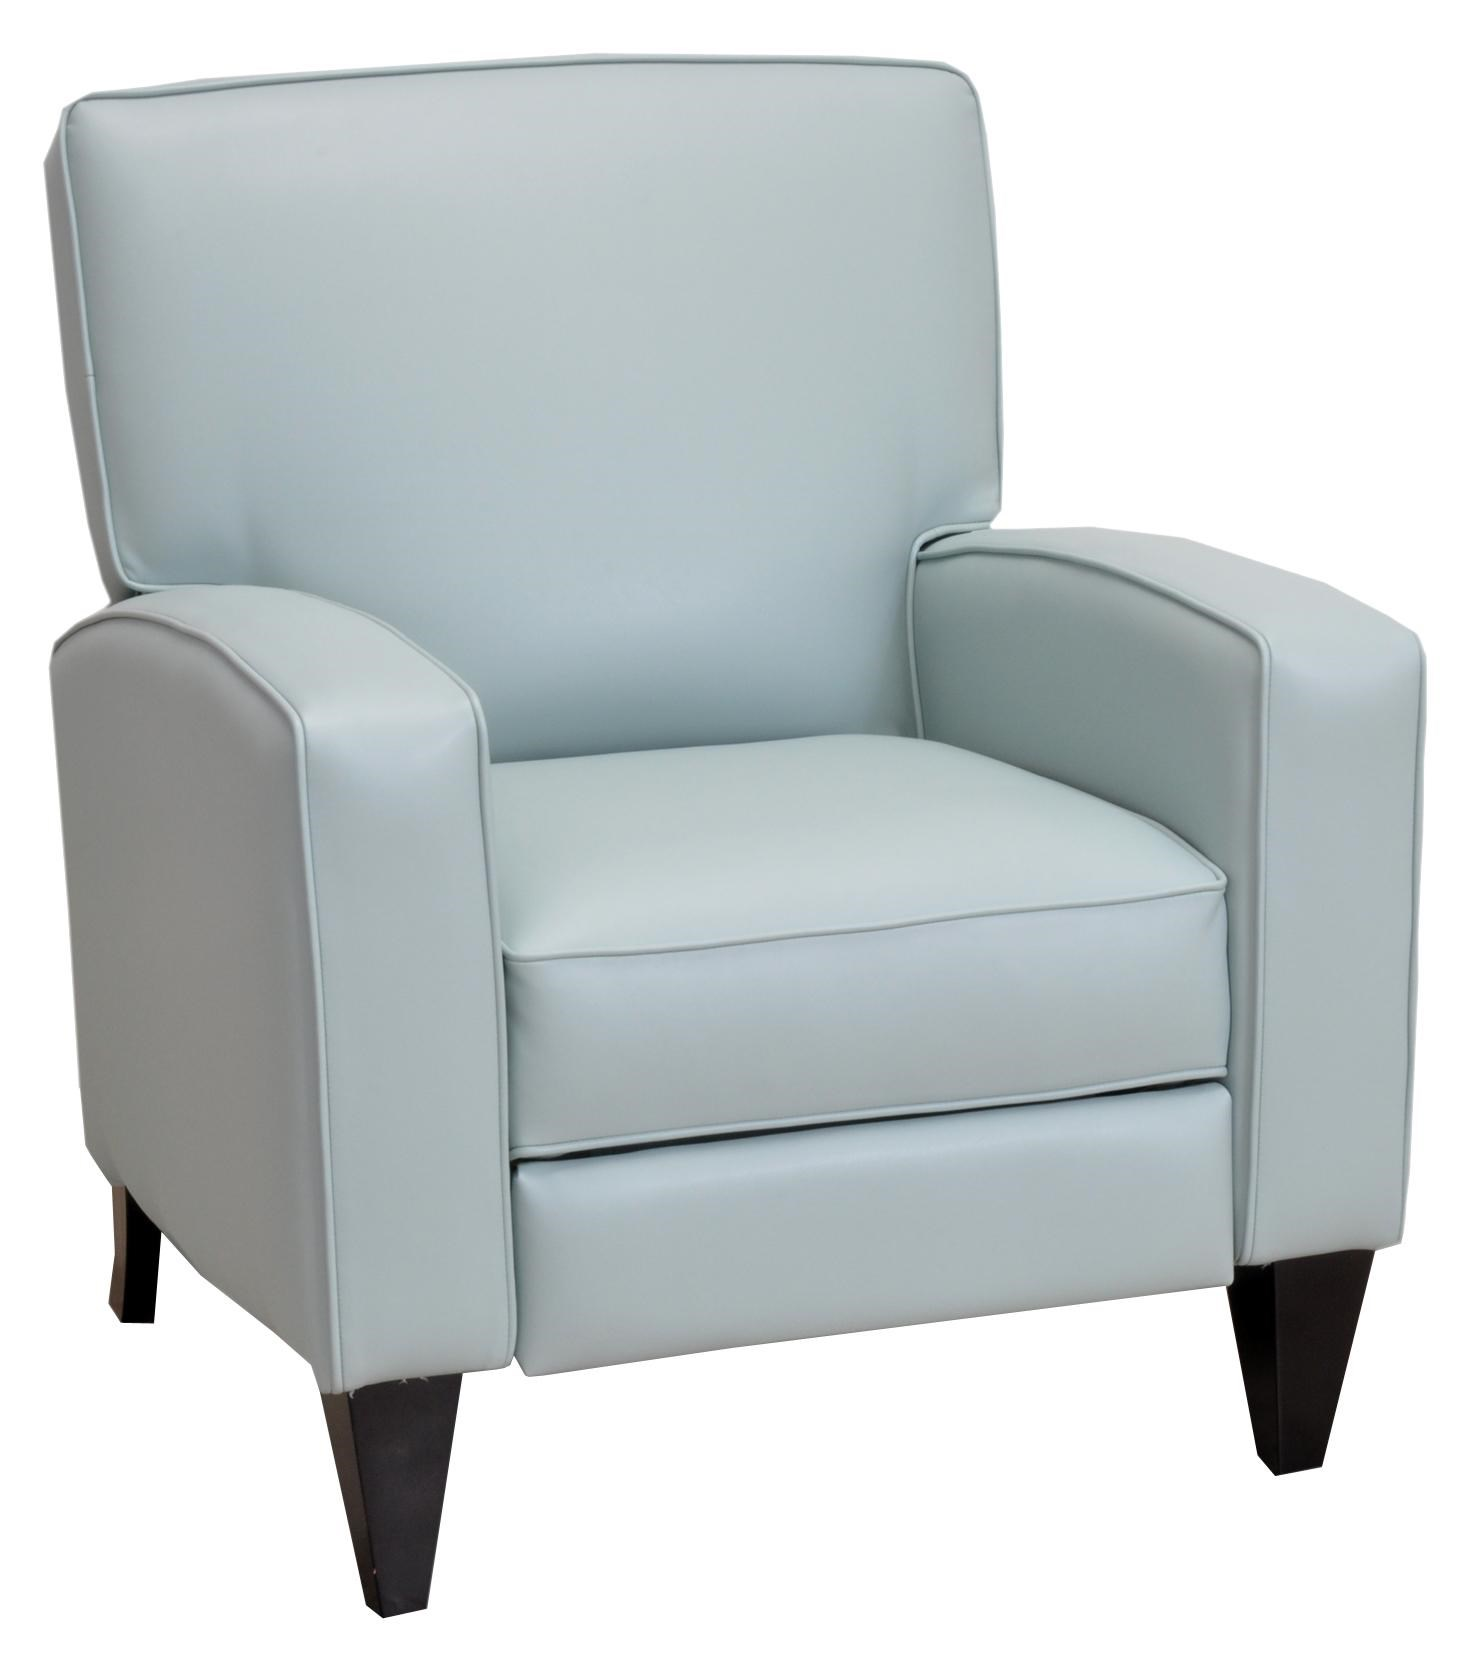 lucy push back chair in casual and contemporary style - franklin